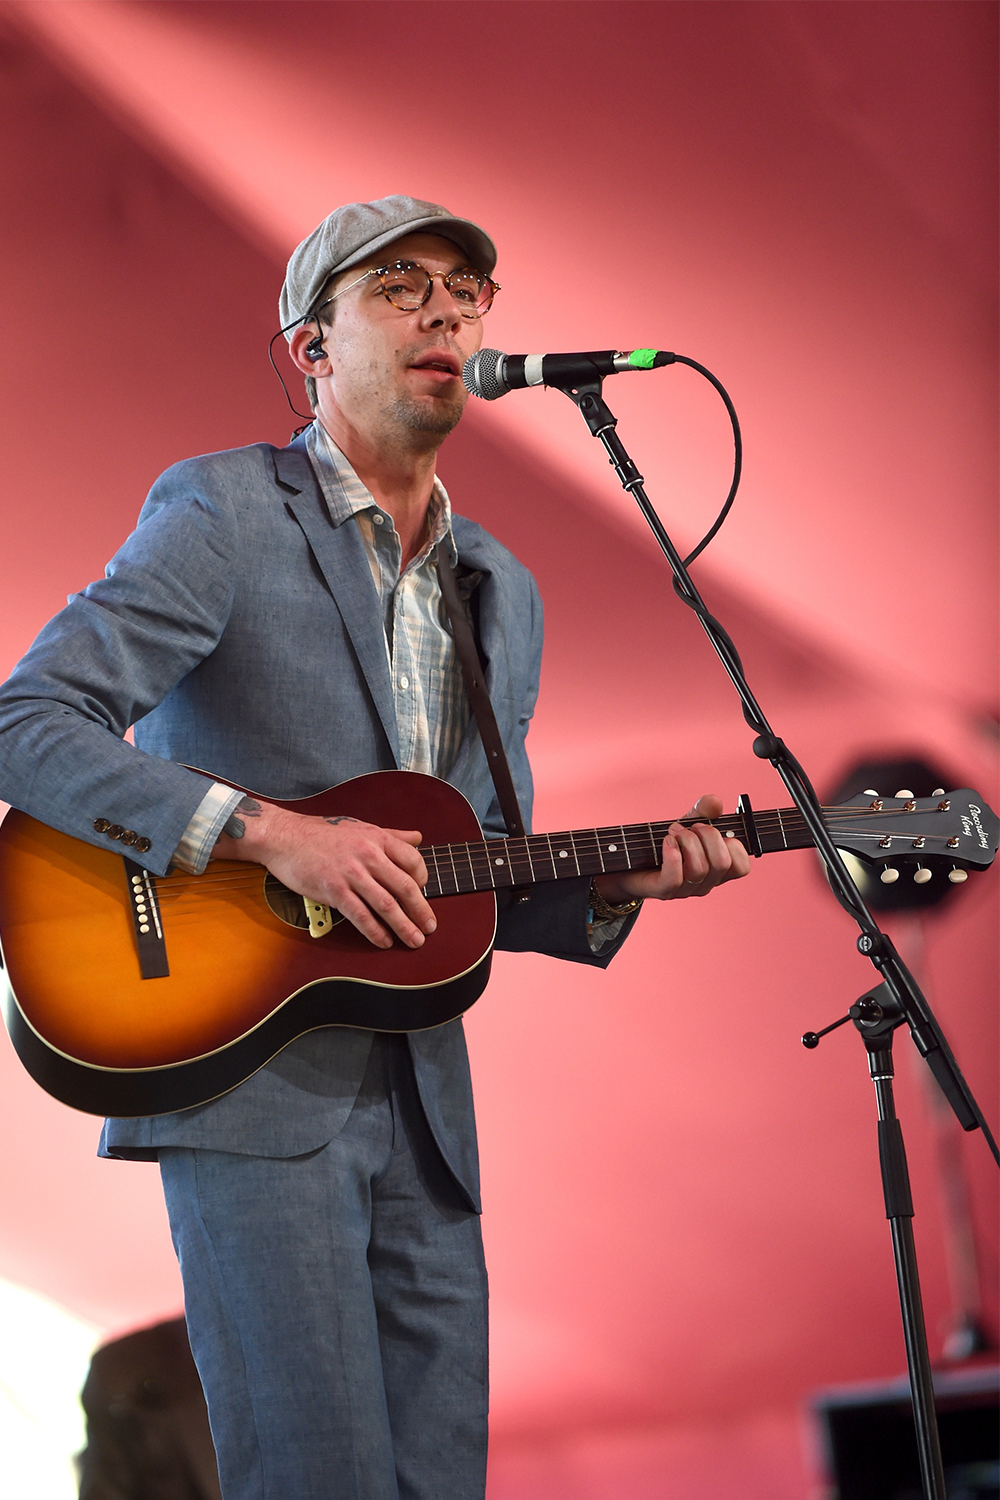 Justin Townes Earle plays the RPS-9